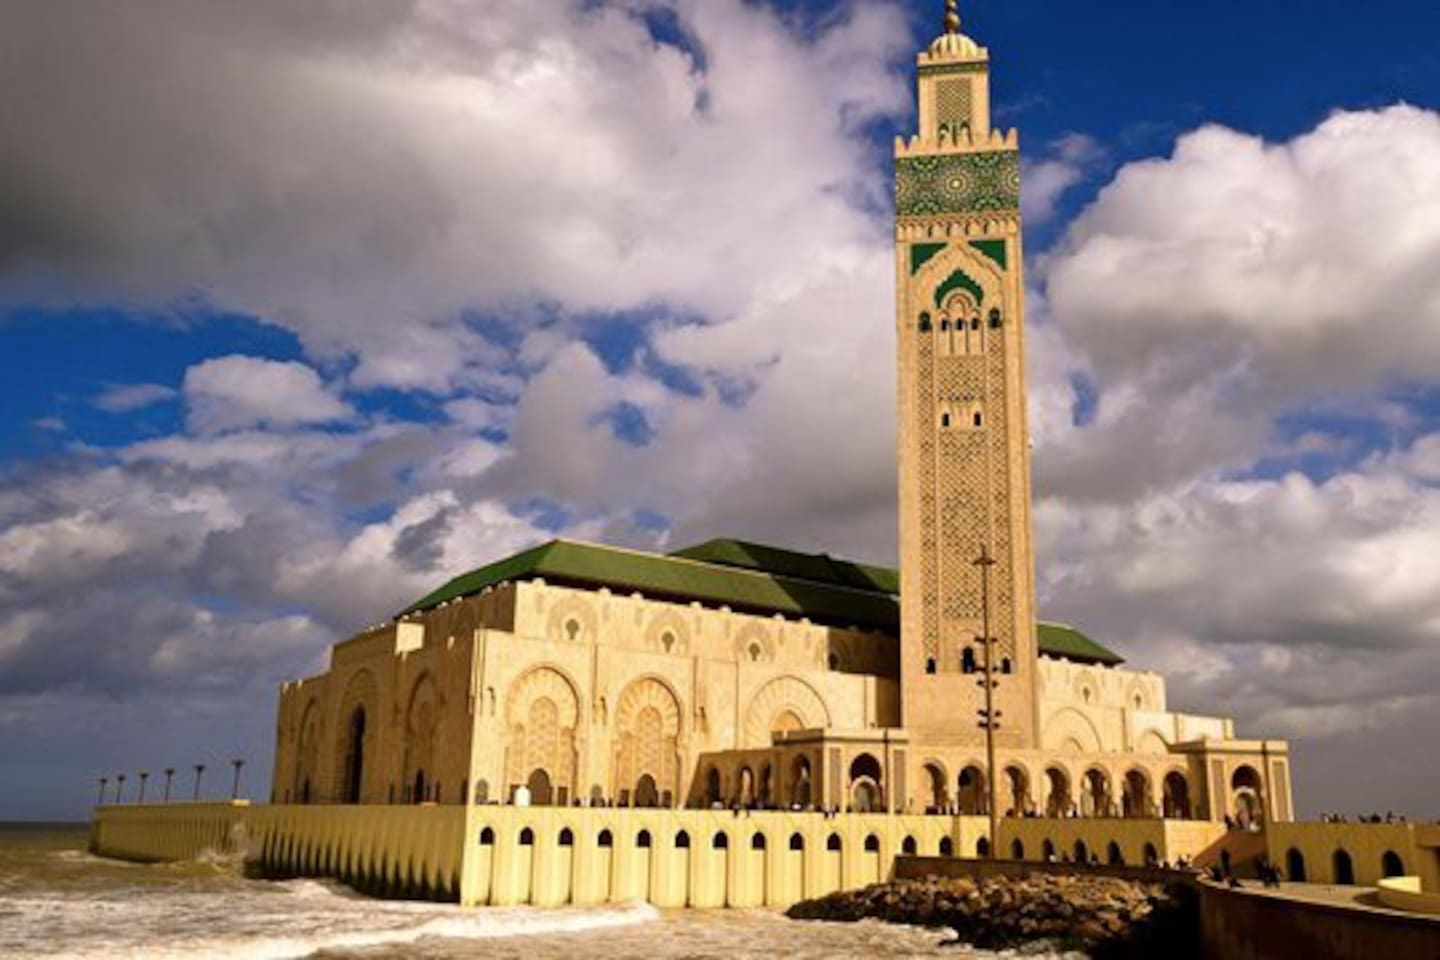 5 Minutes walk to the second-largest mosque in the world Grand Hasan II Mosque, located on the coast of Casablanca.